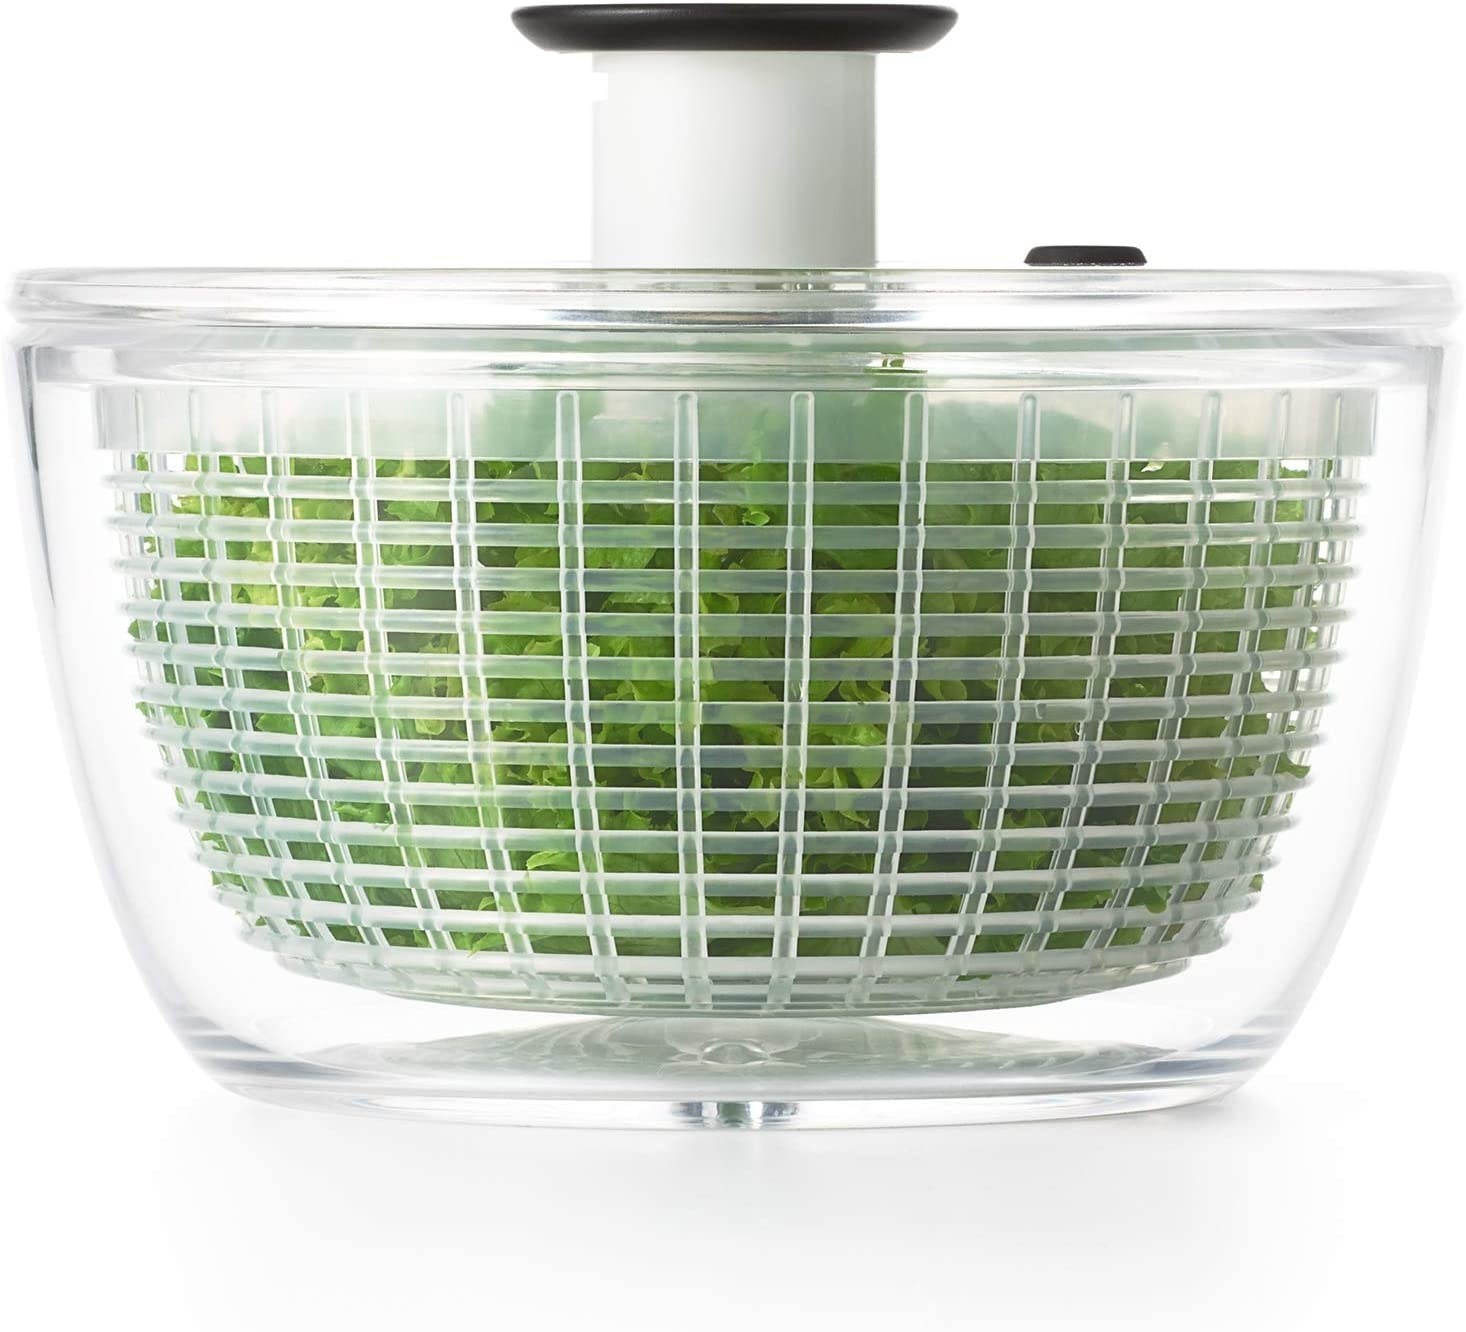 A salad spinner with lettuce inside of it.